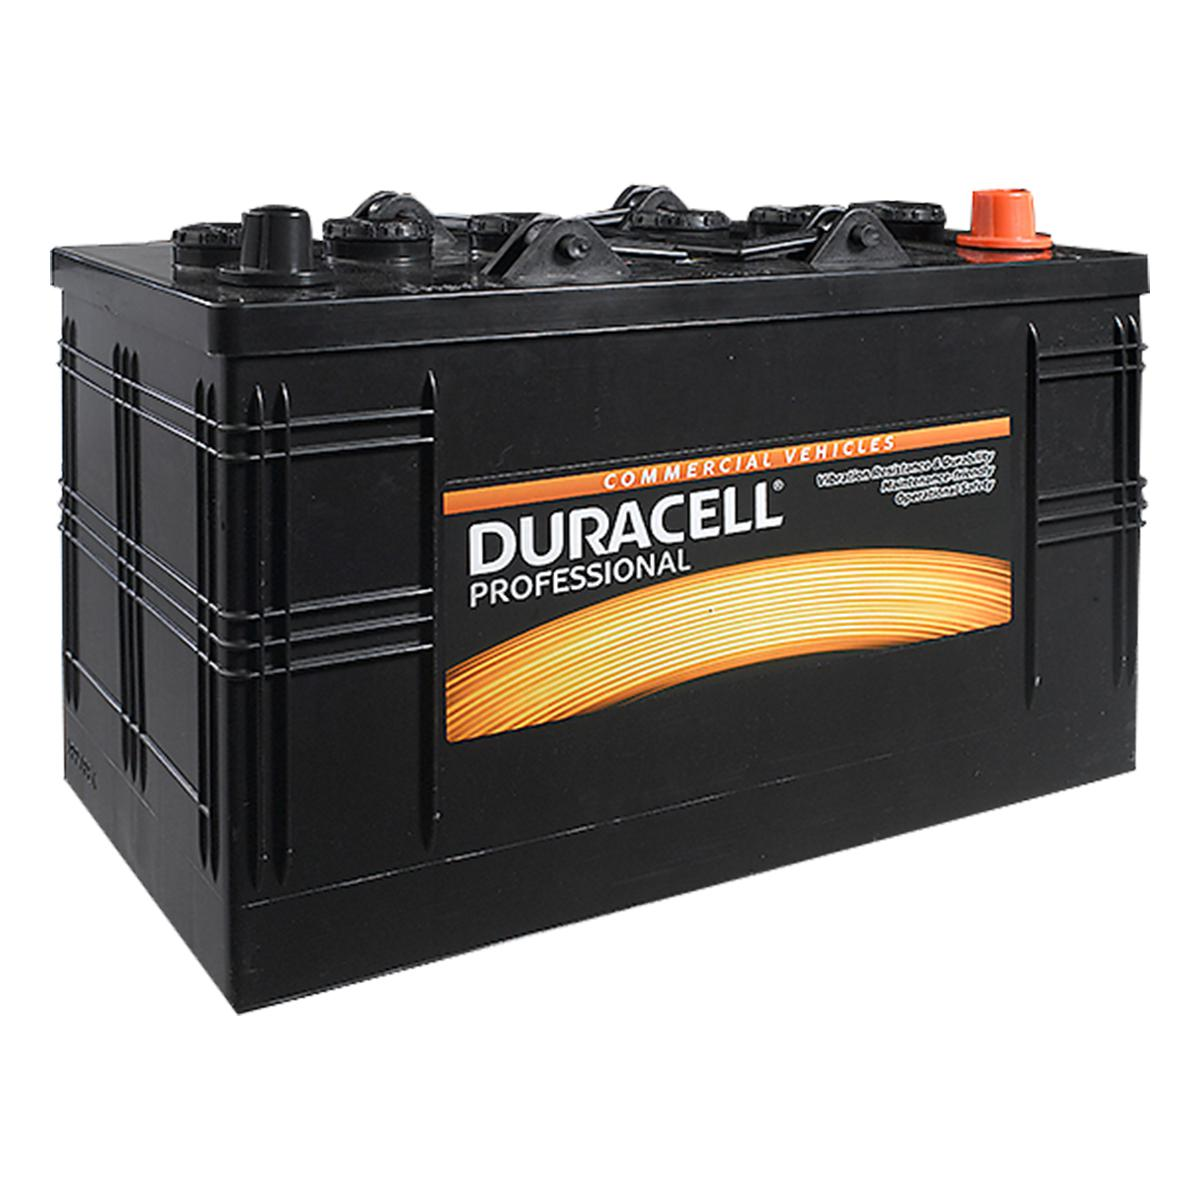 Duracell 663 / DP110 Professional Commercial Vehicle